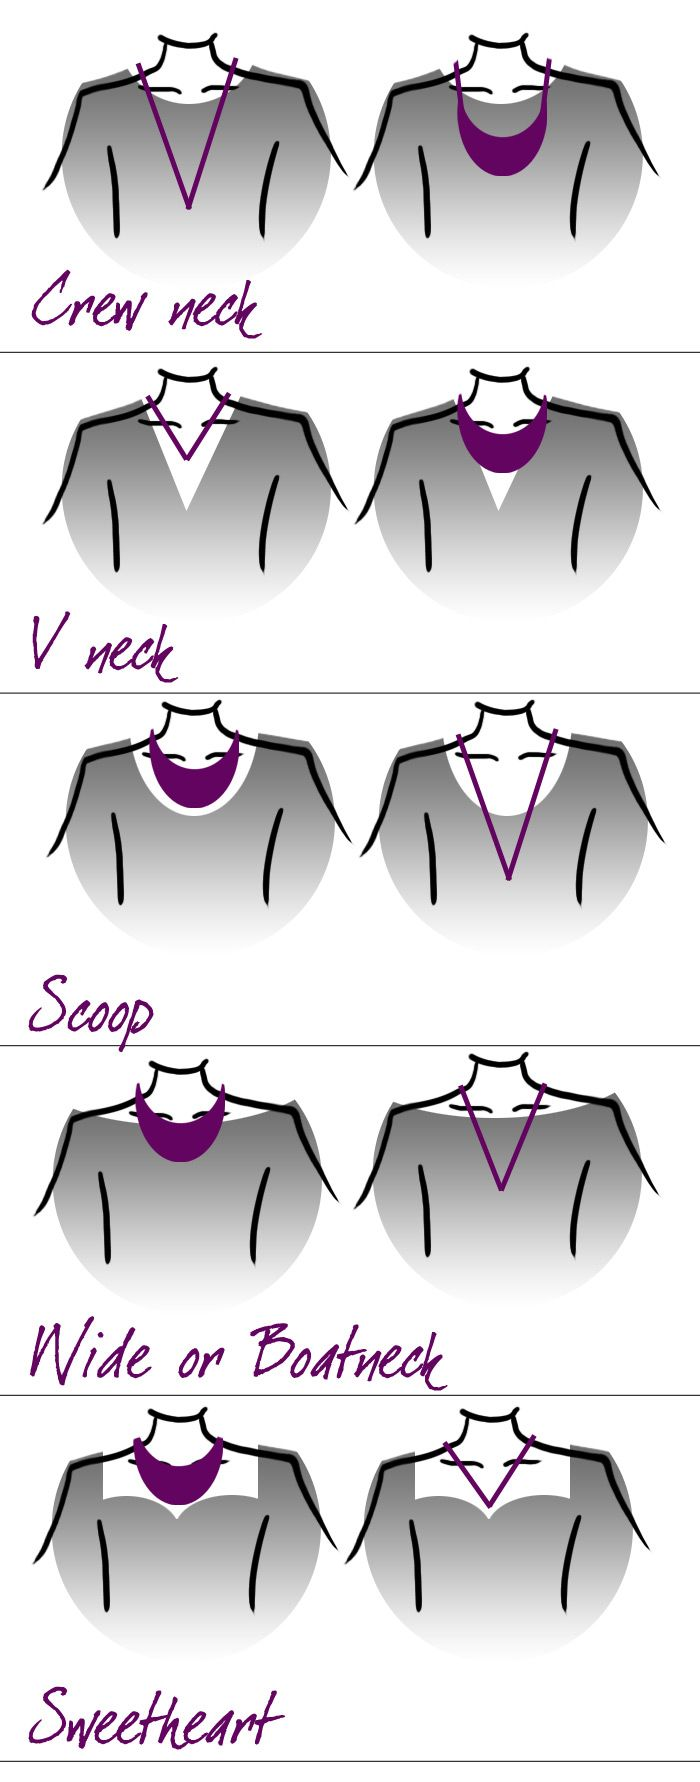 Pick a Necklace for Your Neckline